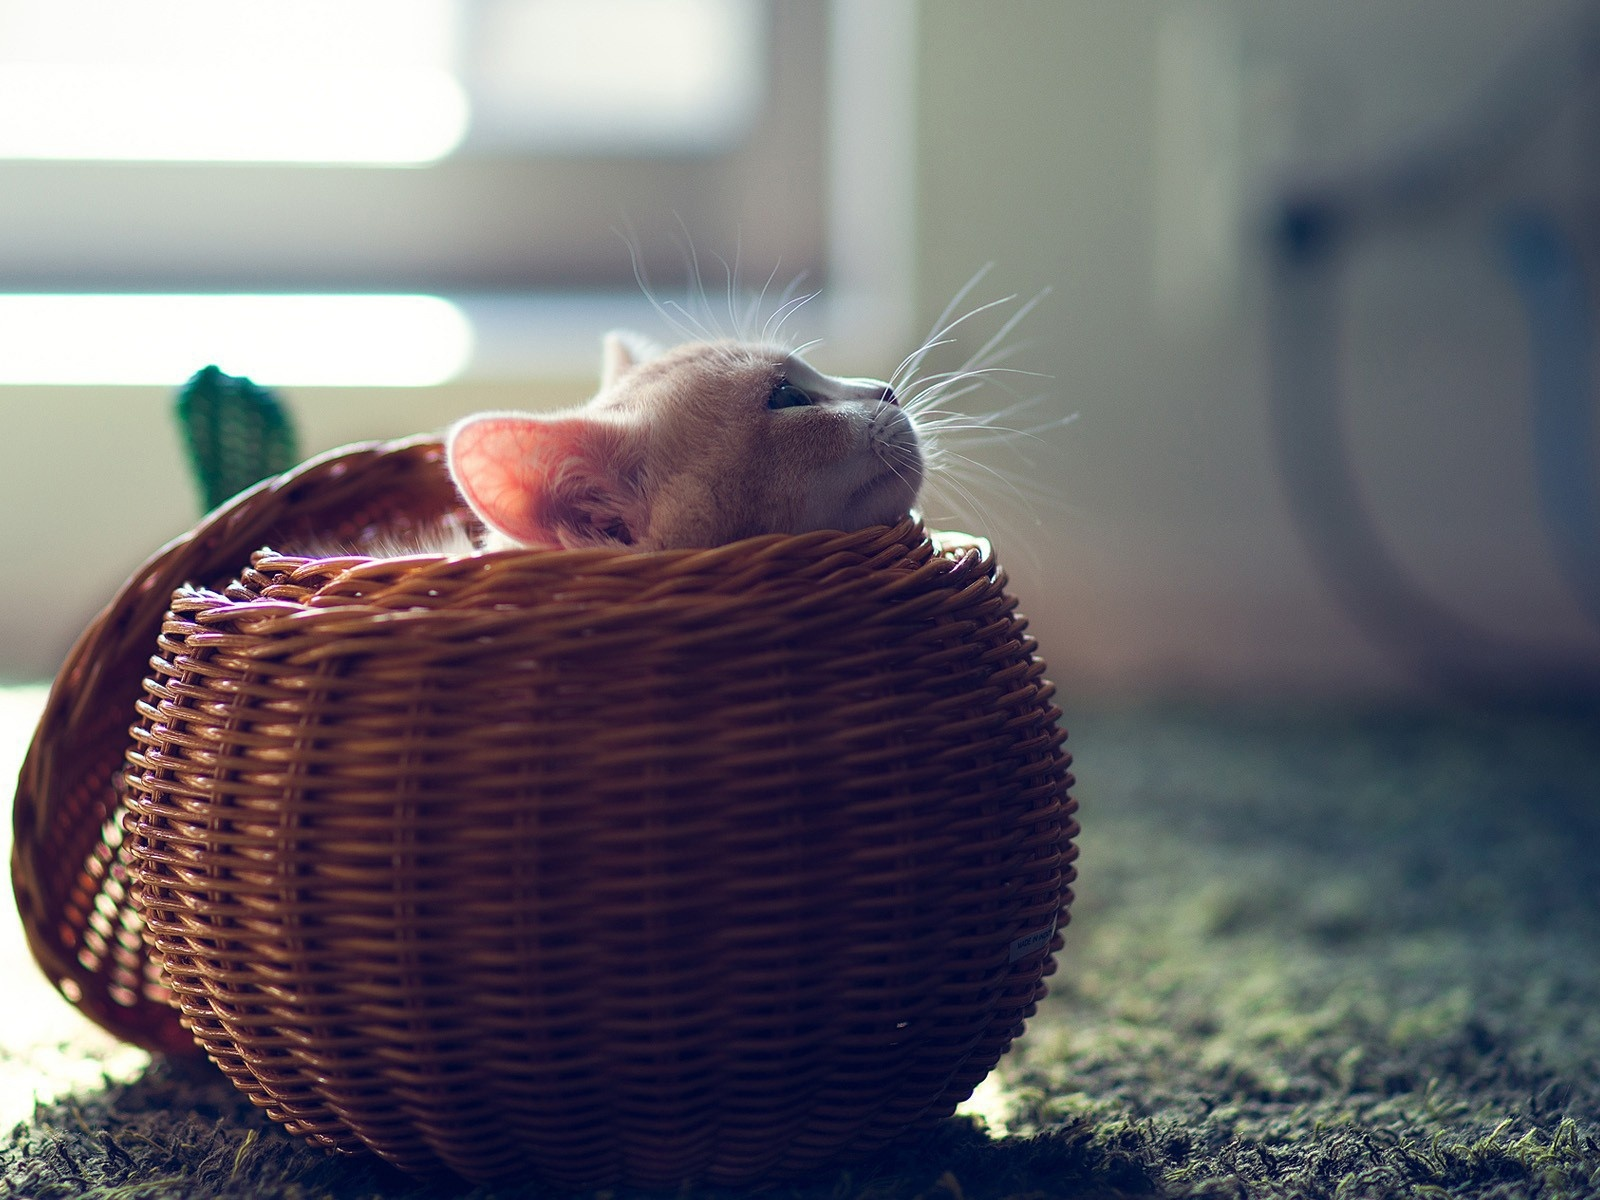 click to free download the wallpaper--Cute Animals Image, Cute Kitten in Basket, I Am Aweaken, Time to Go for a Walk 1600X1200 free wallpaper download